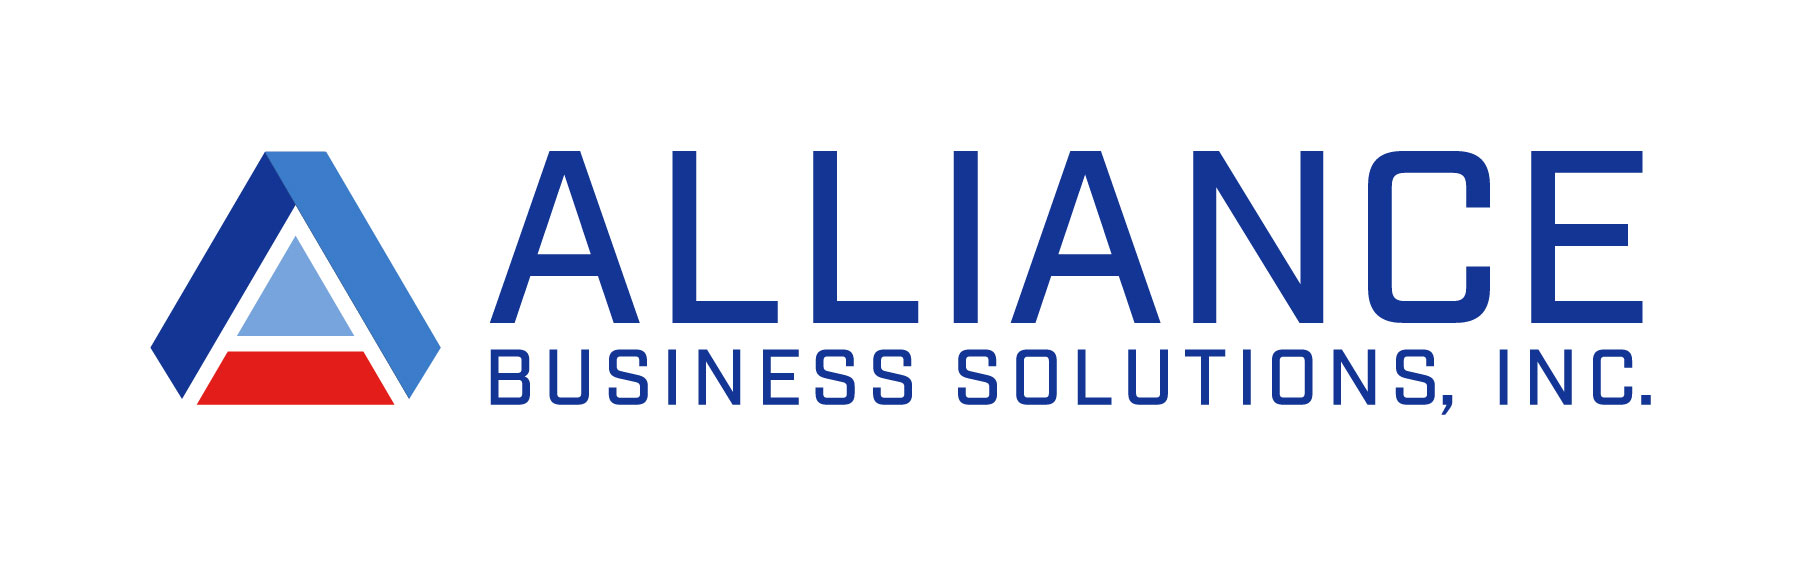 Alliance Business Solutions Inc.